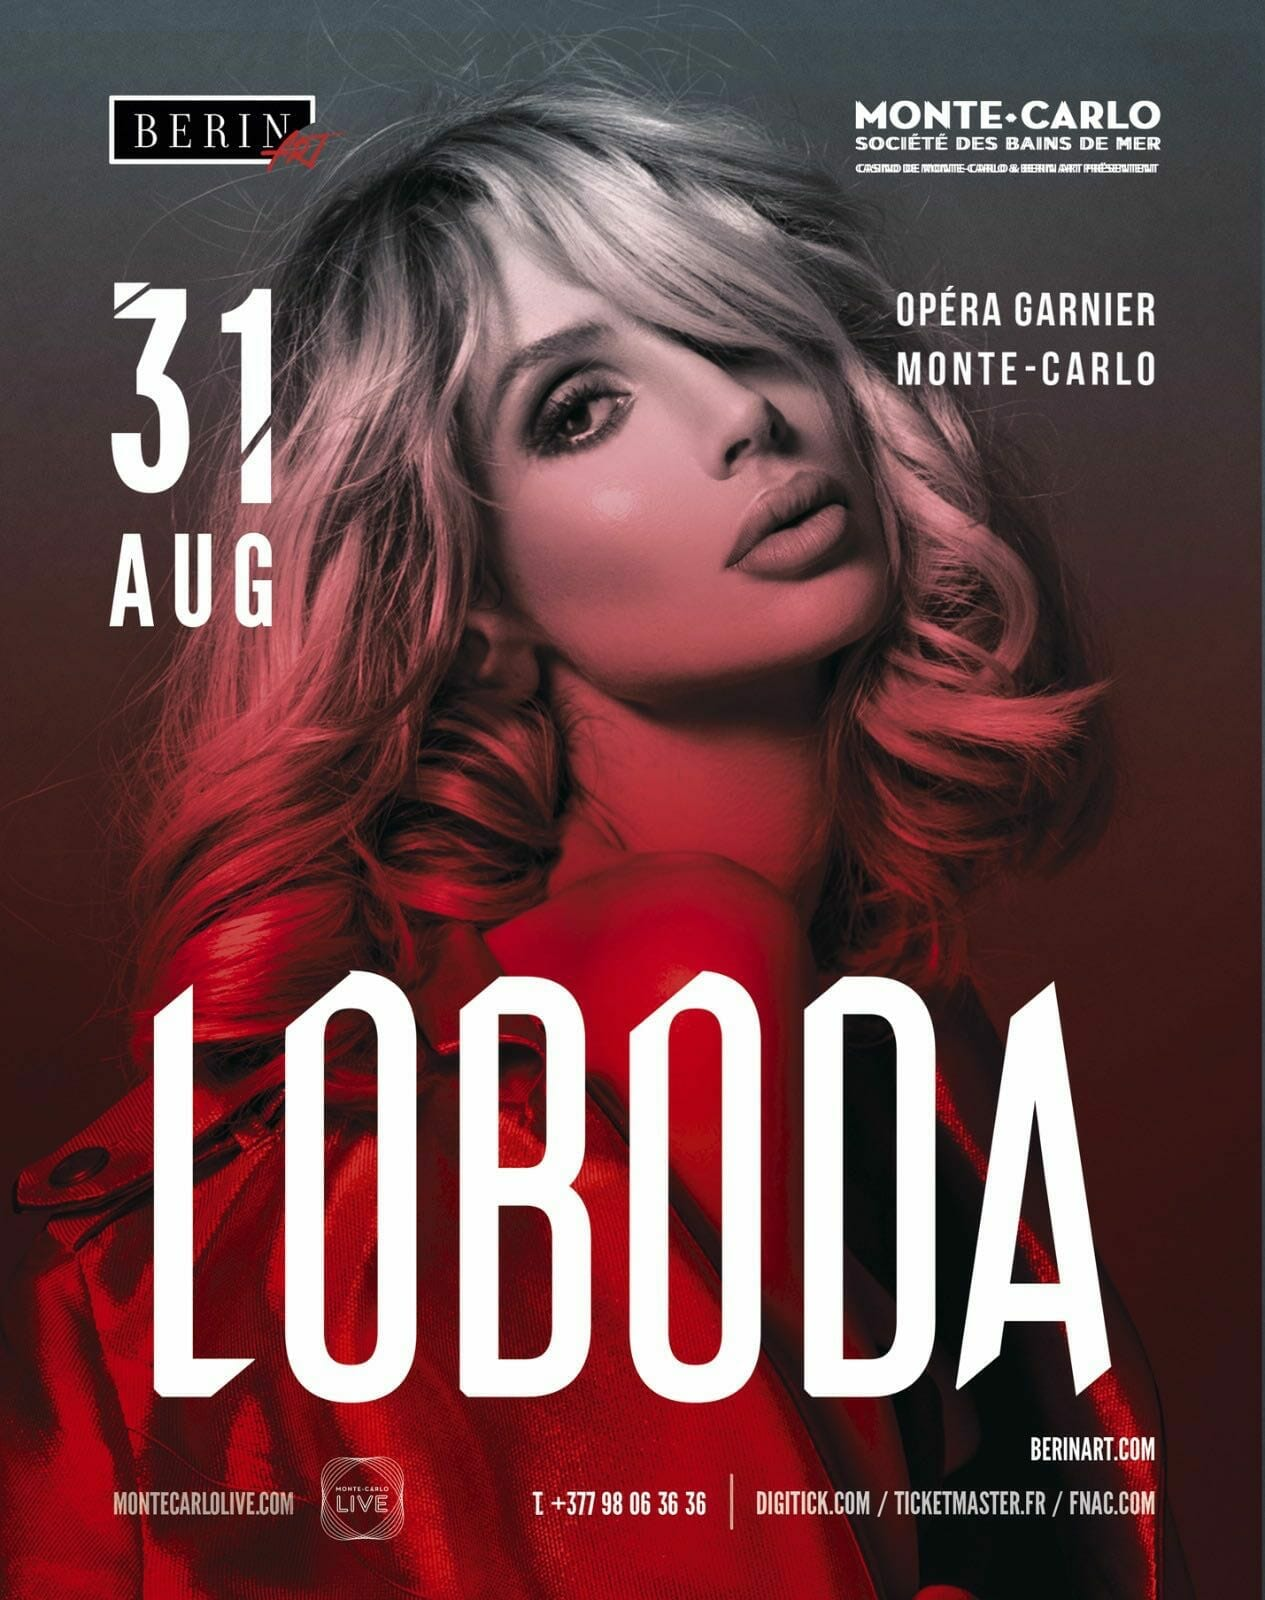 Women envy her, men dream about her. But how Svetlana Loboda looked 10 years ago